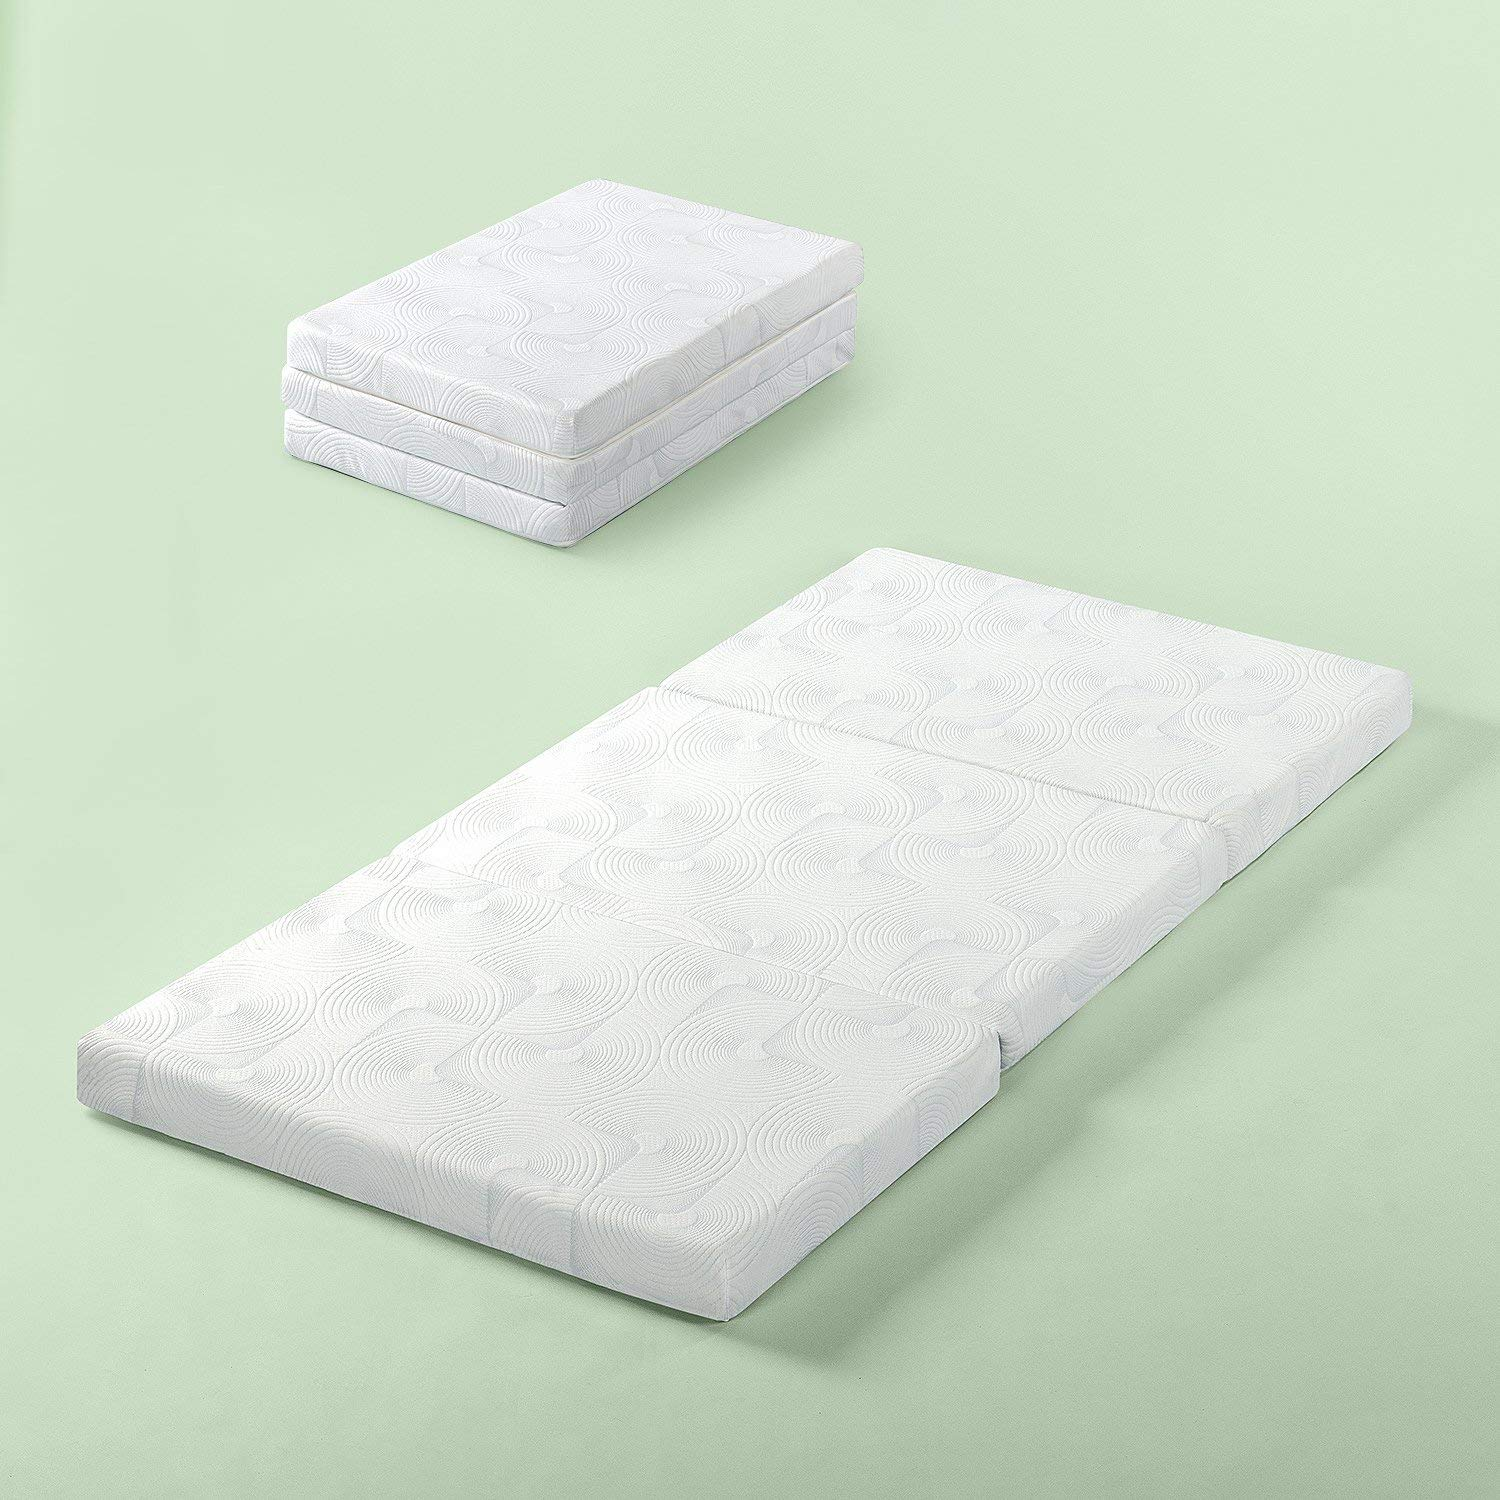 Zinus Floor Mattress Review by www.snoremagazine.com